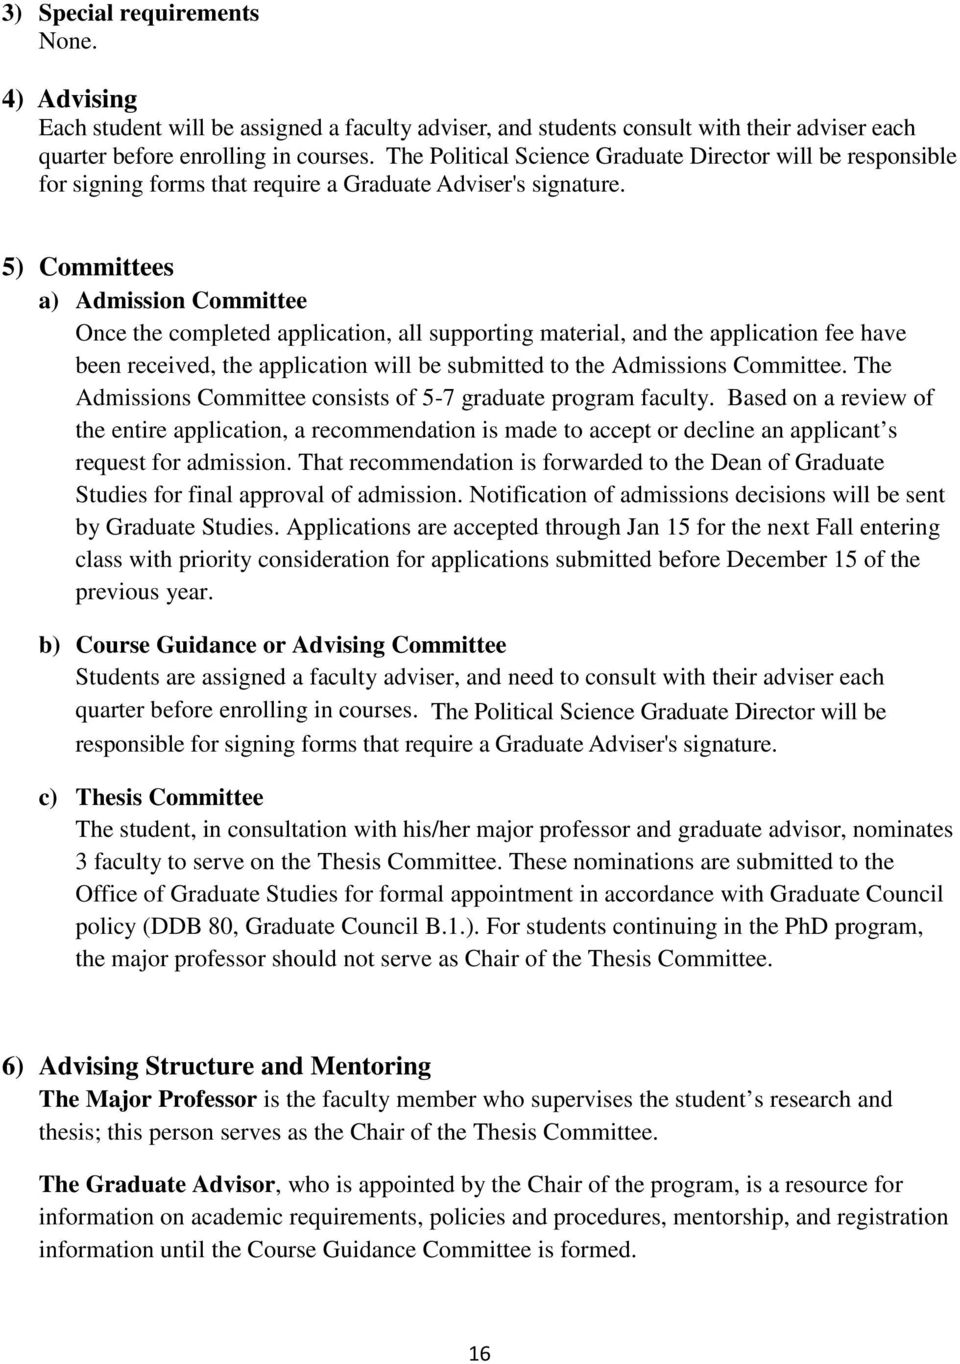 5) Committees a) Admission Committee Once the completed application, all supporting material, and the application fee have been received, the application will be submitted to the Admissions Committee.